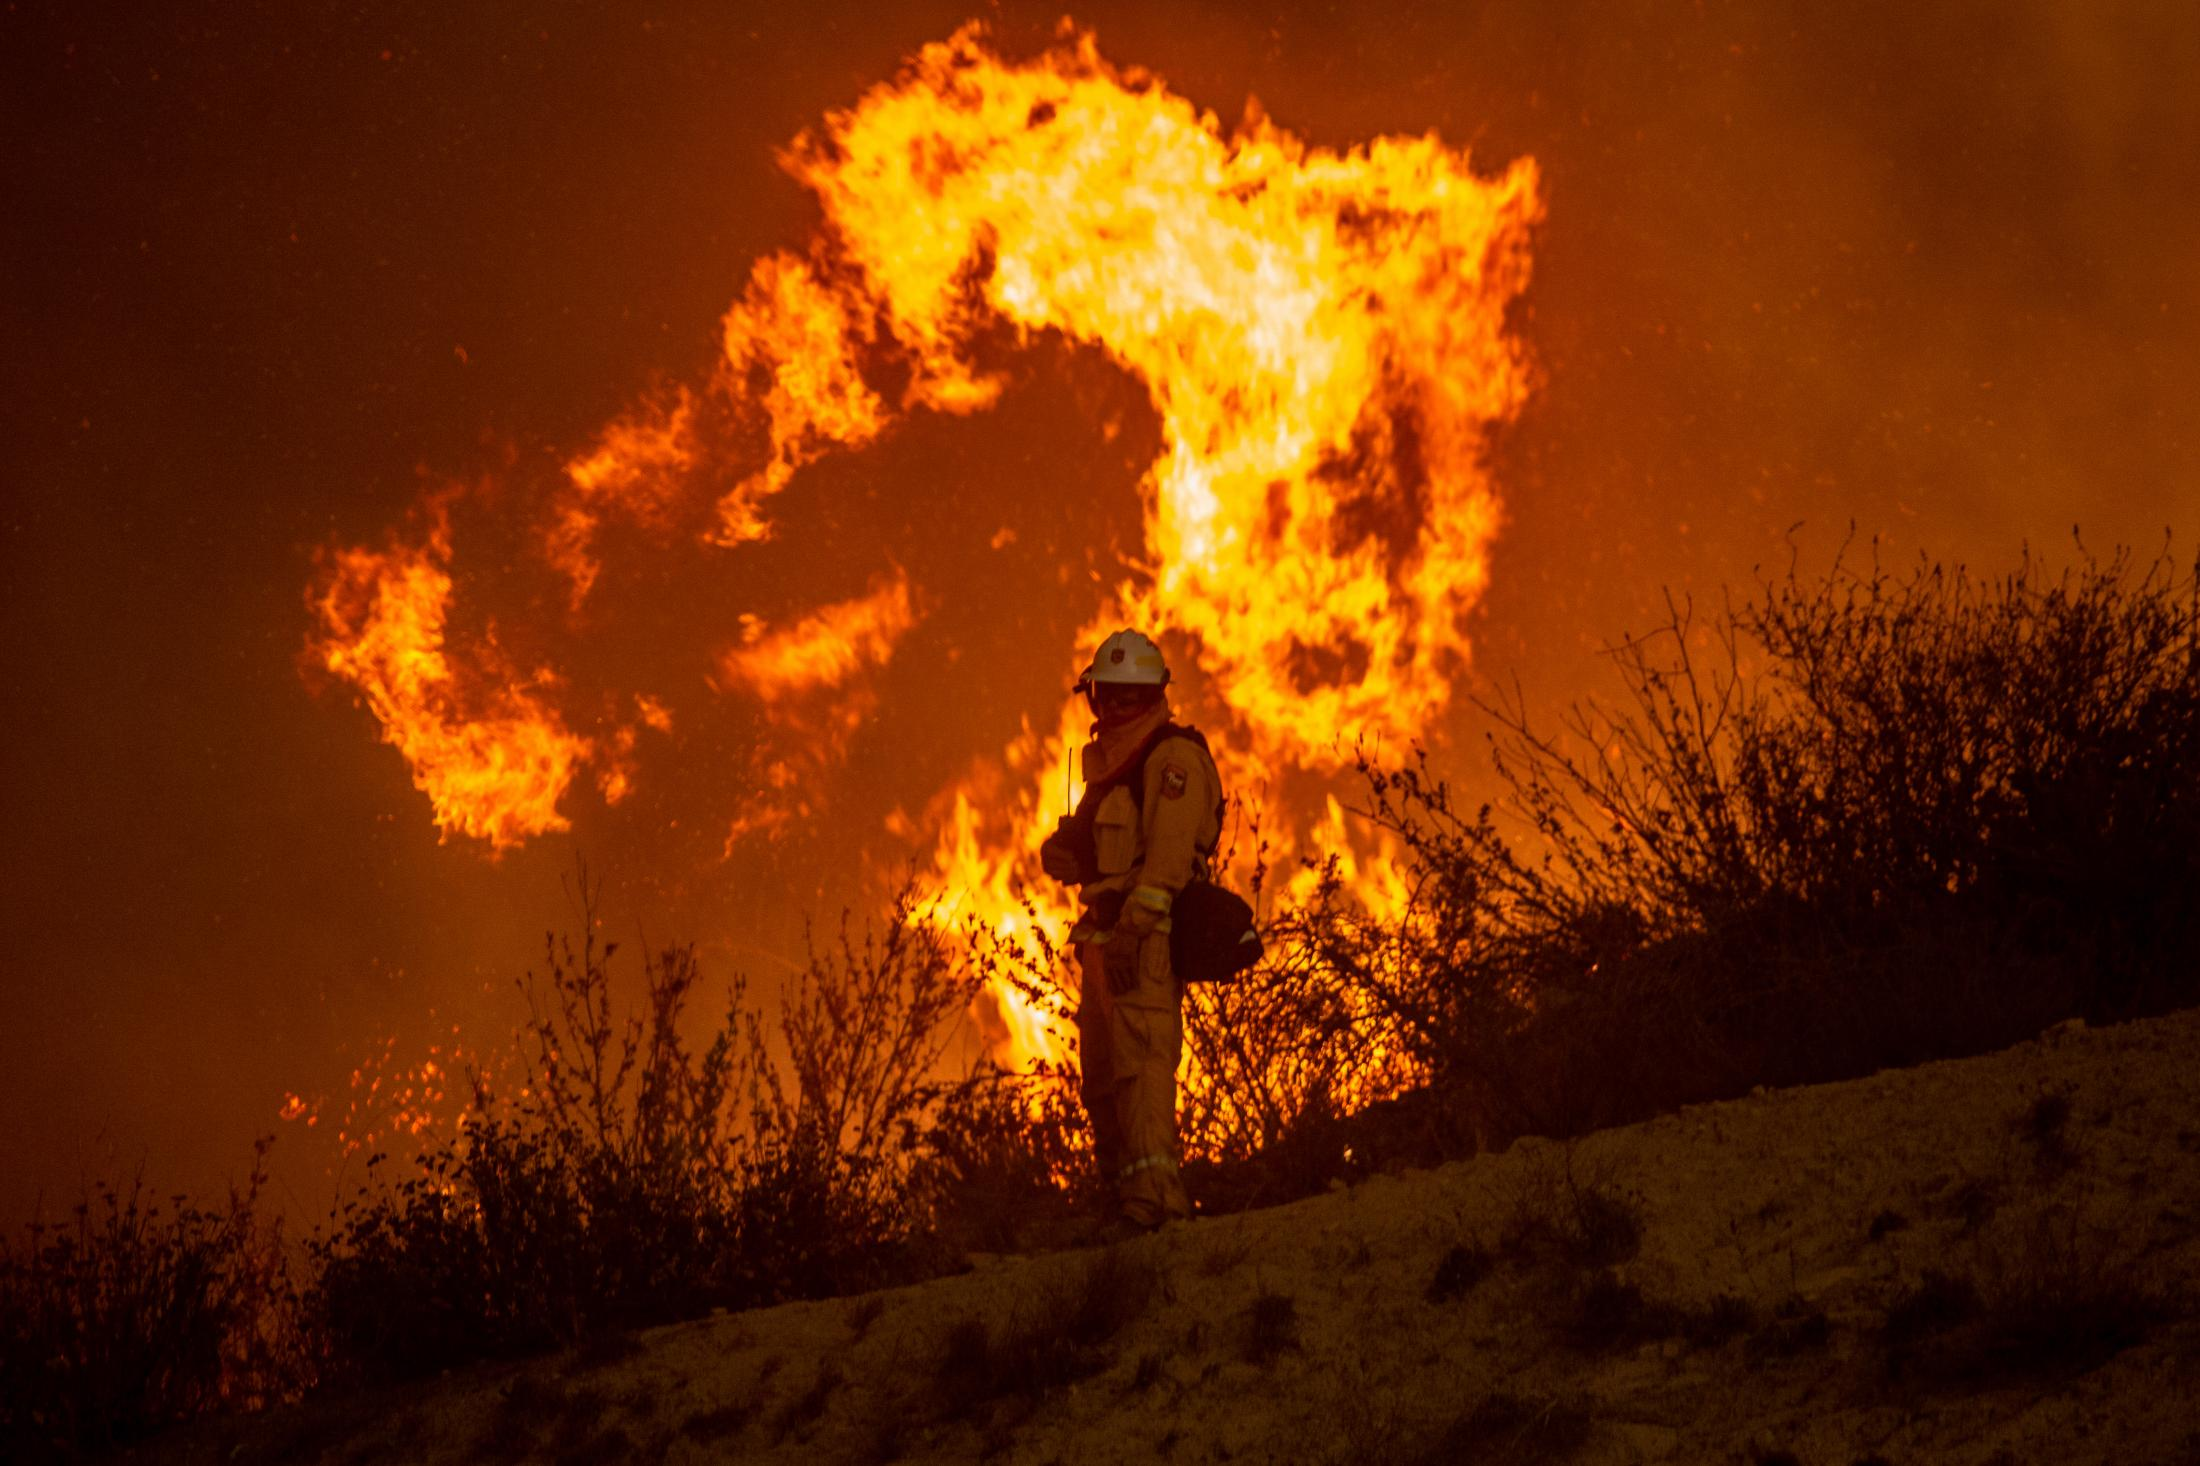 A CALFIRE member stands in front of a bursting flame on the fireline of one of the most dangerous fires in California history.